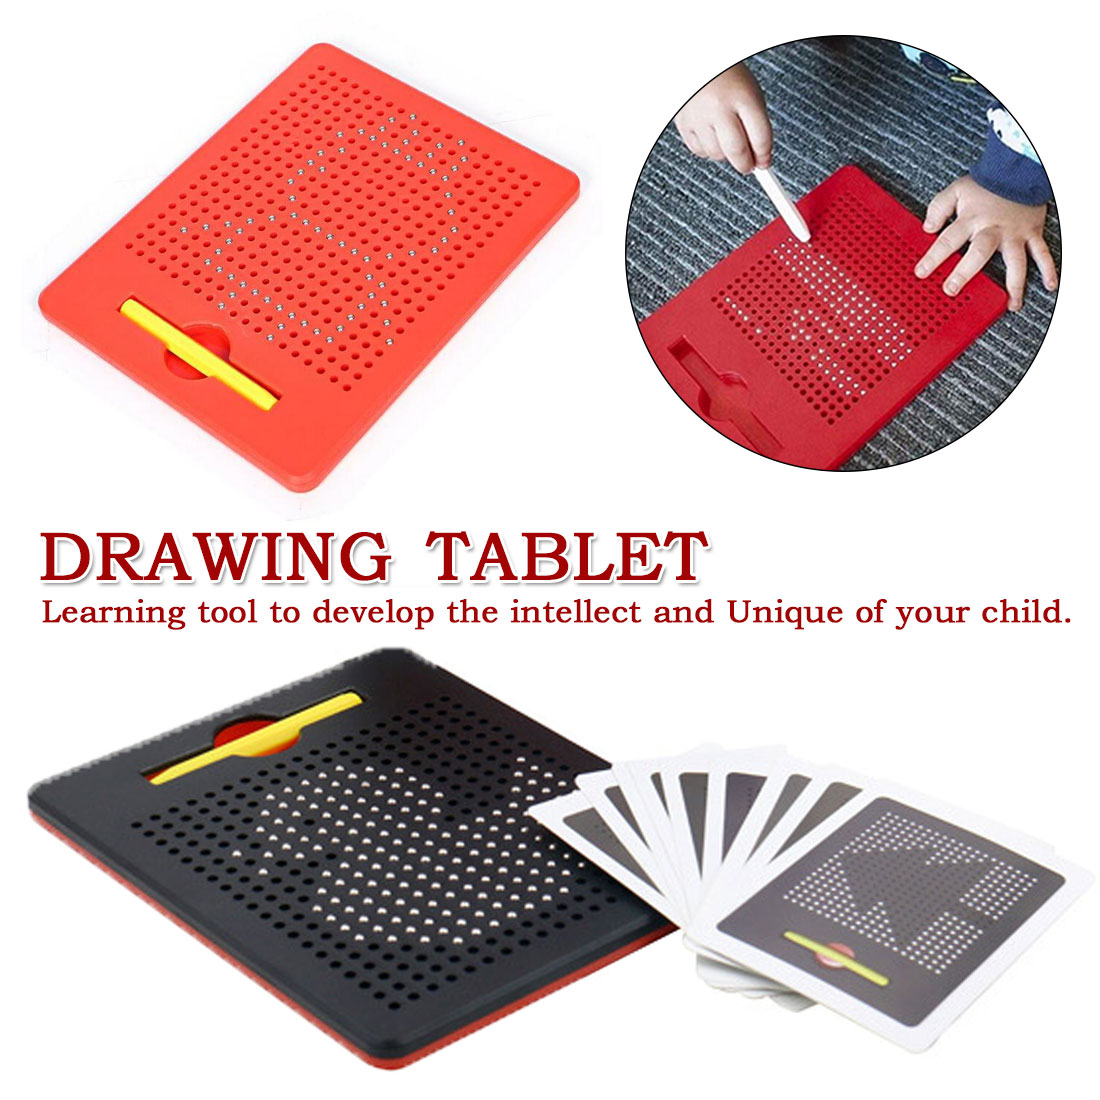 Magnetic Tablet Magnet Drawing Board With Steel Bead Magnet Stylus Pen For Kids